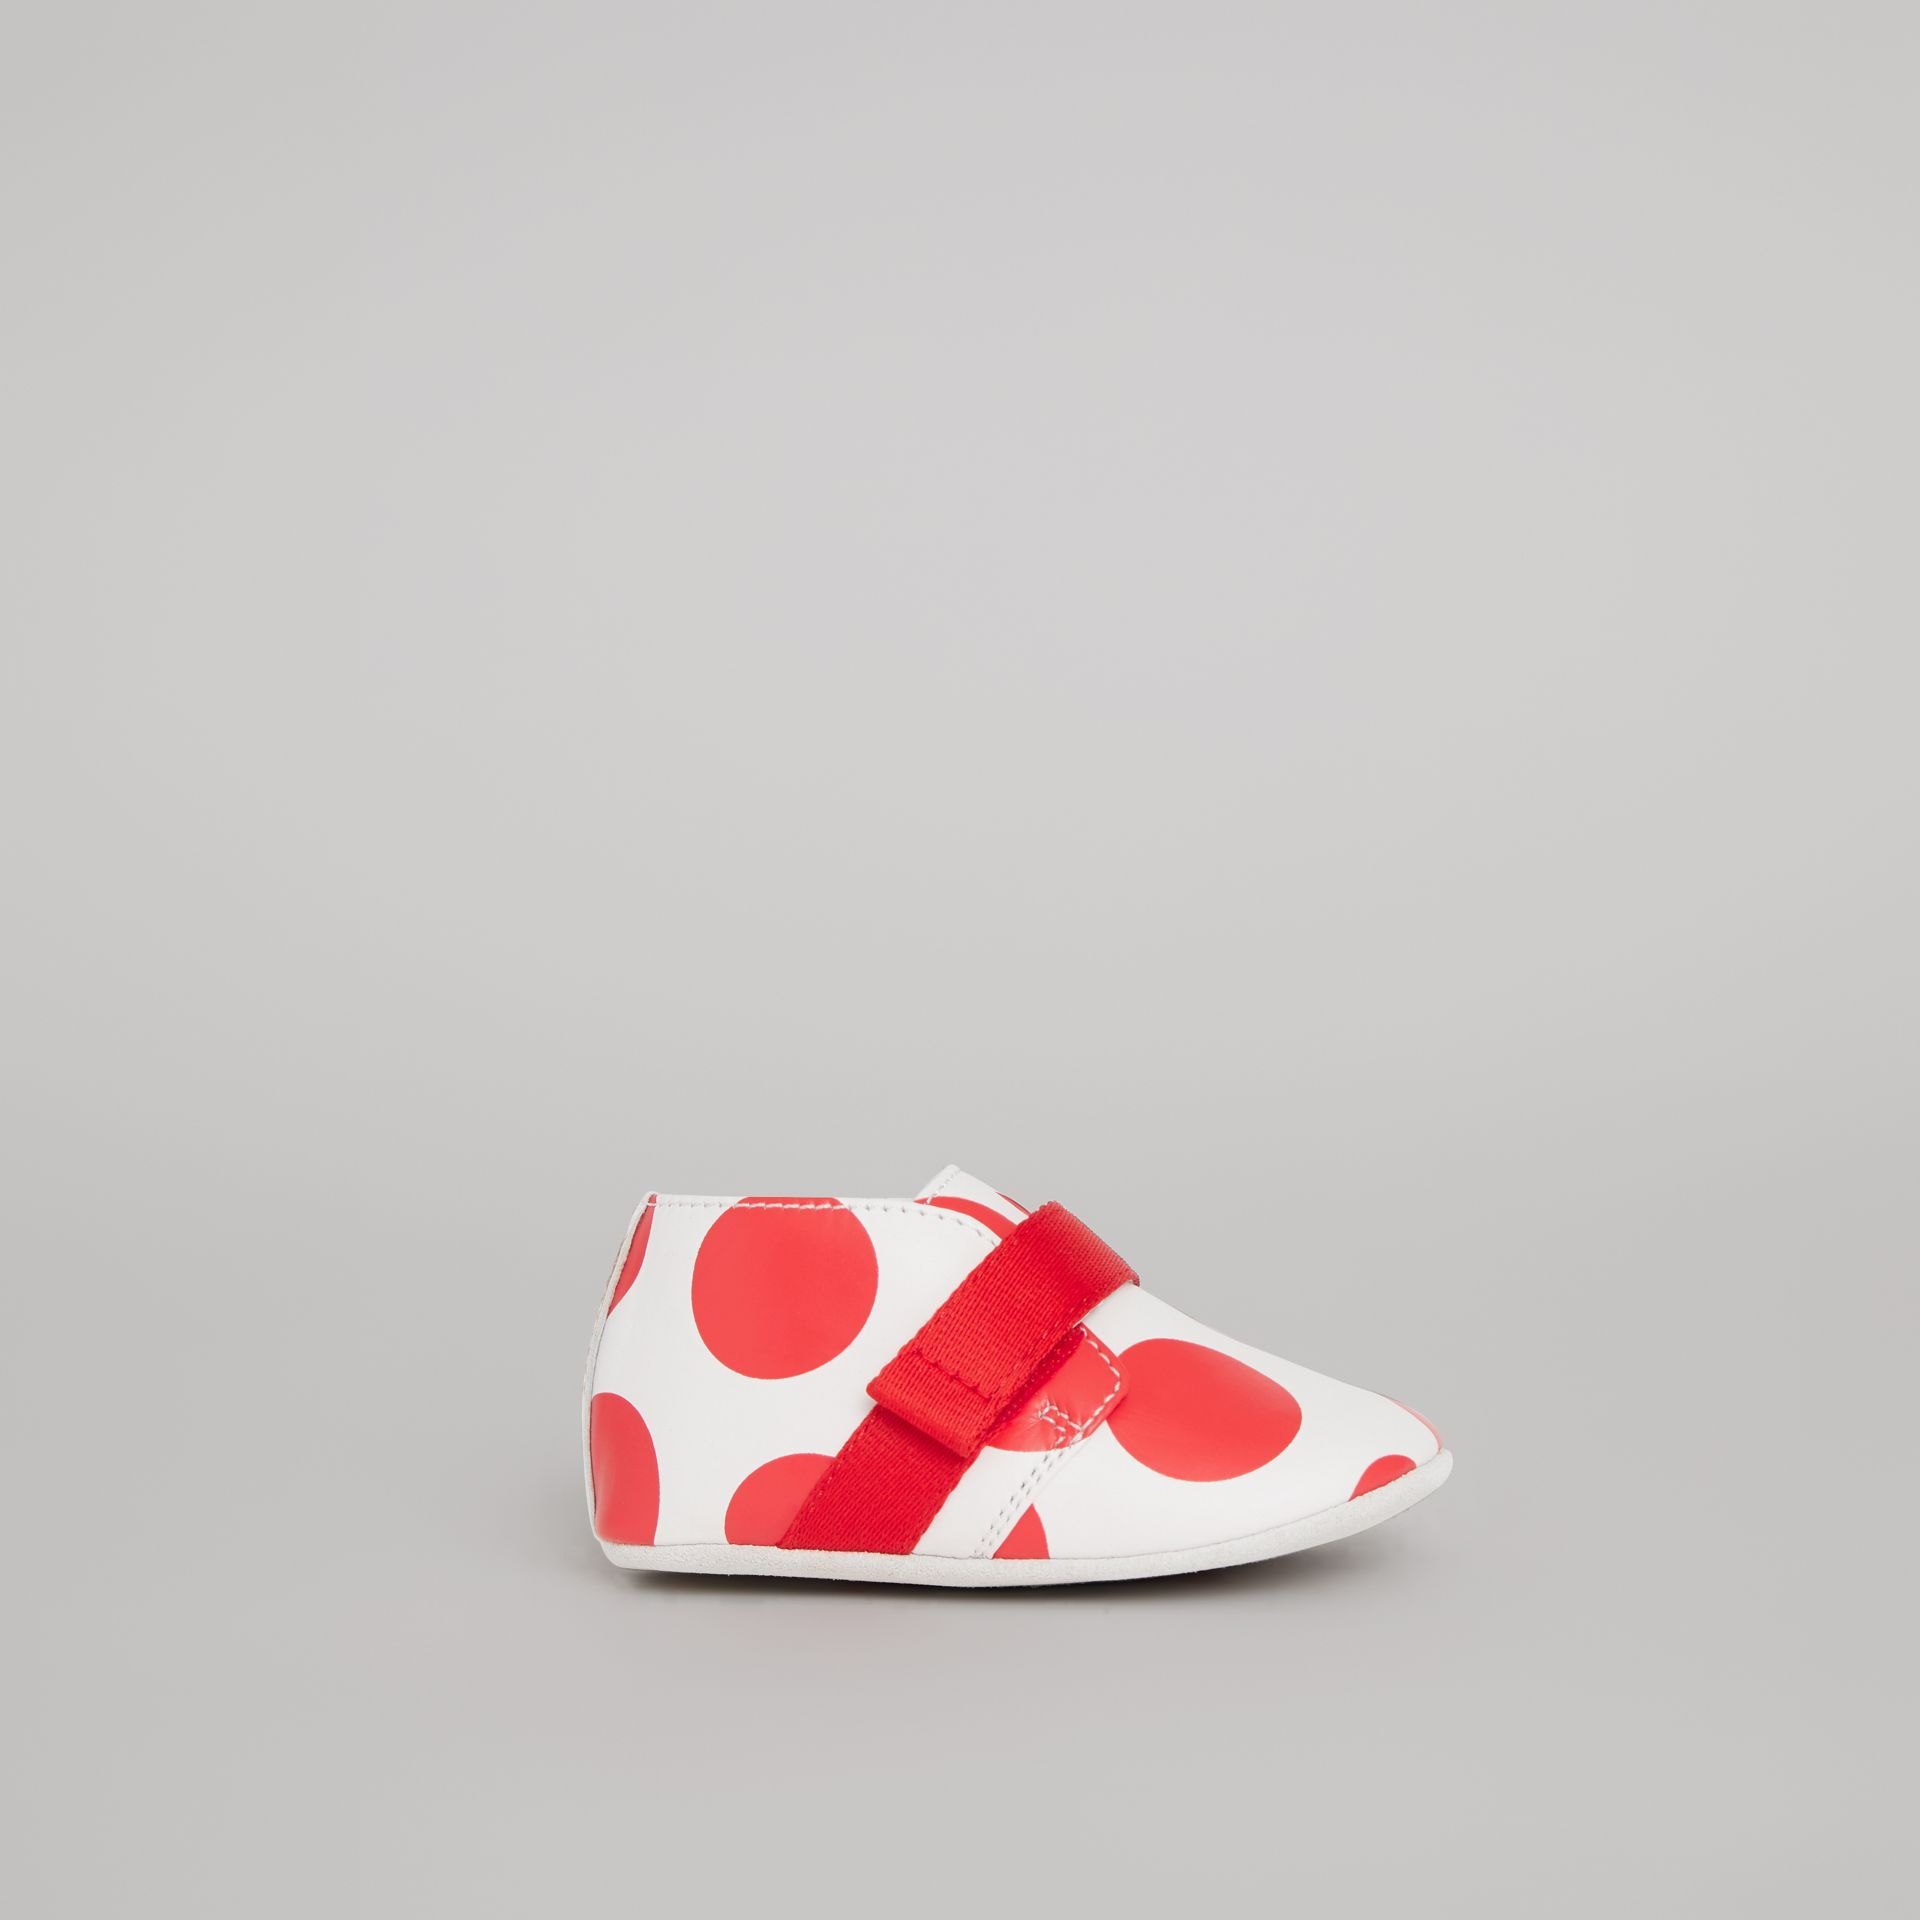 Chaussures en cuir à pois (Rouge Vif) - Enfant | Burberry - photo de la galerie 3